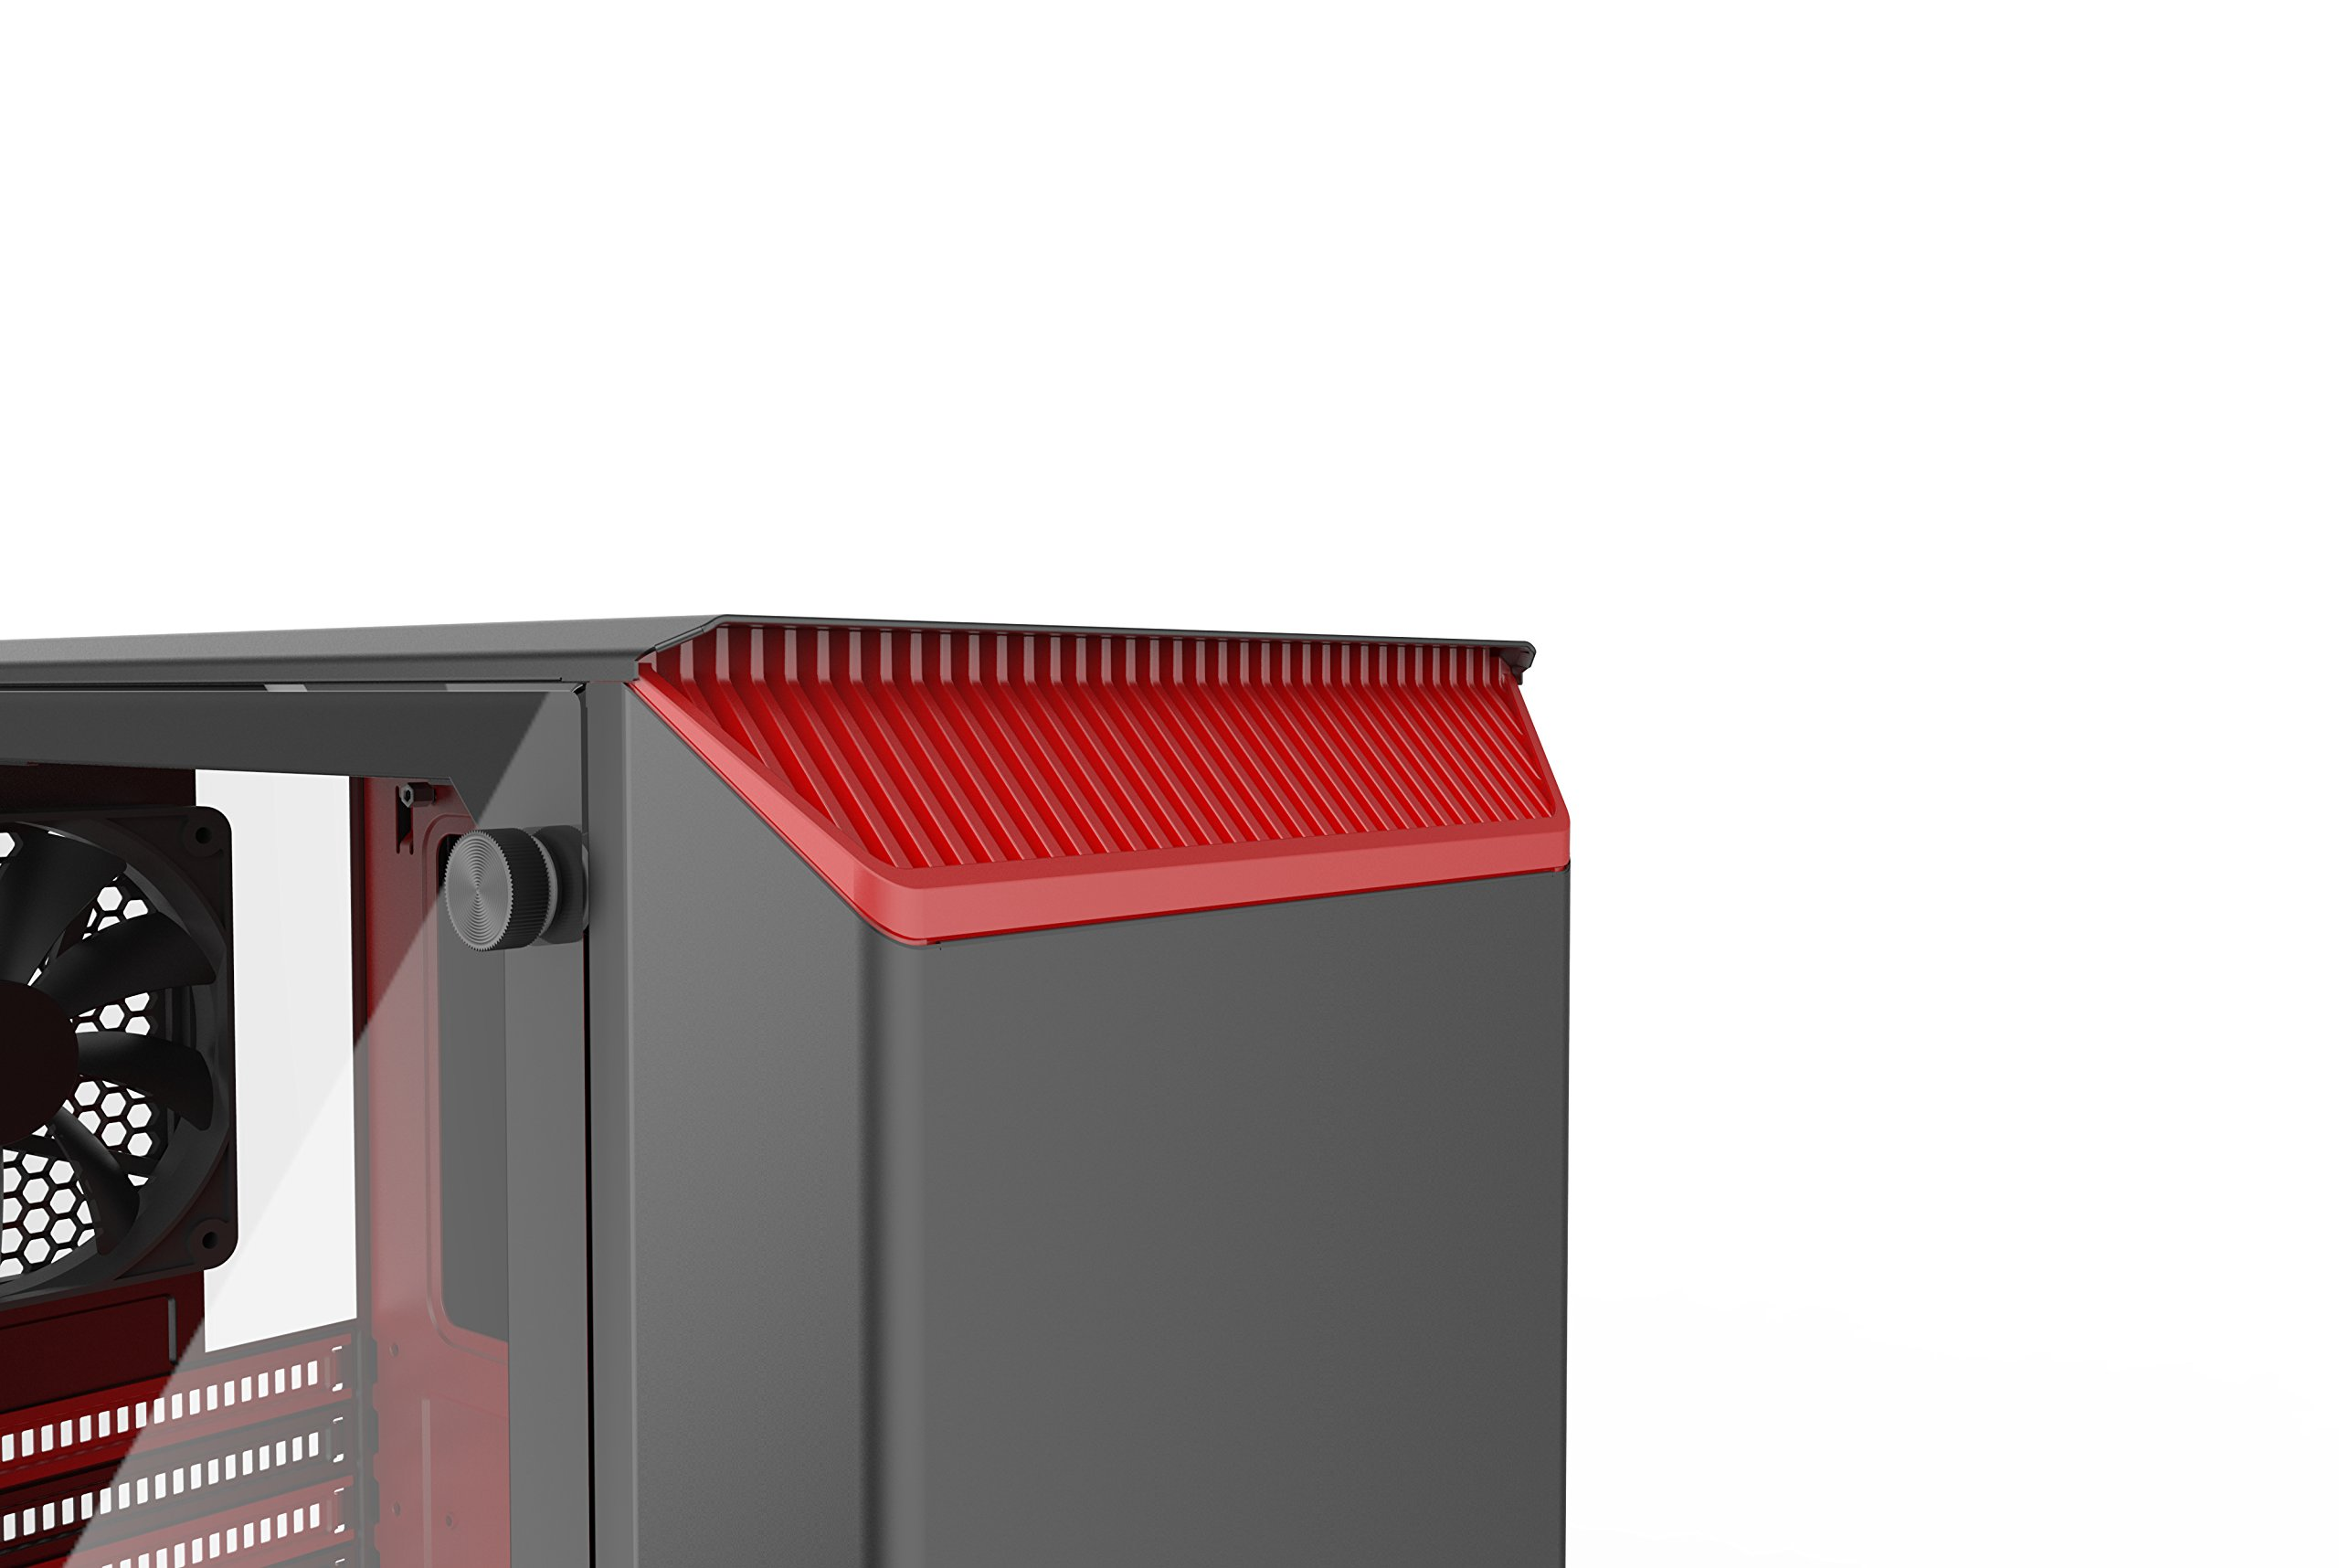 Phanteks PH-EC300PTG_BR Eclipse P300 Tempered Glass Steel ATX Mid Tower Case Black/Red by Phanteks (Image #10)